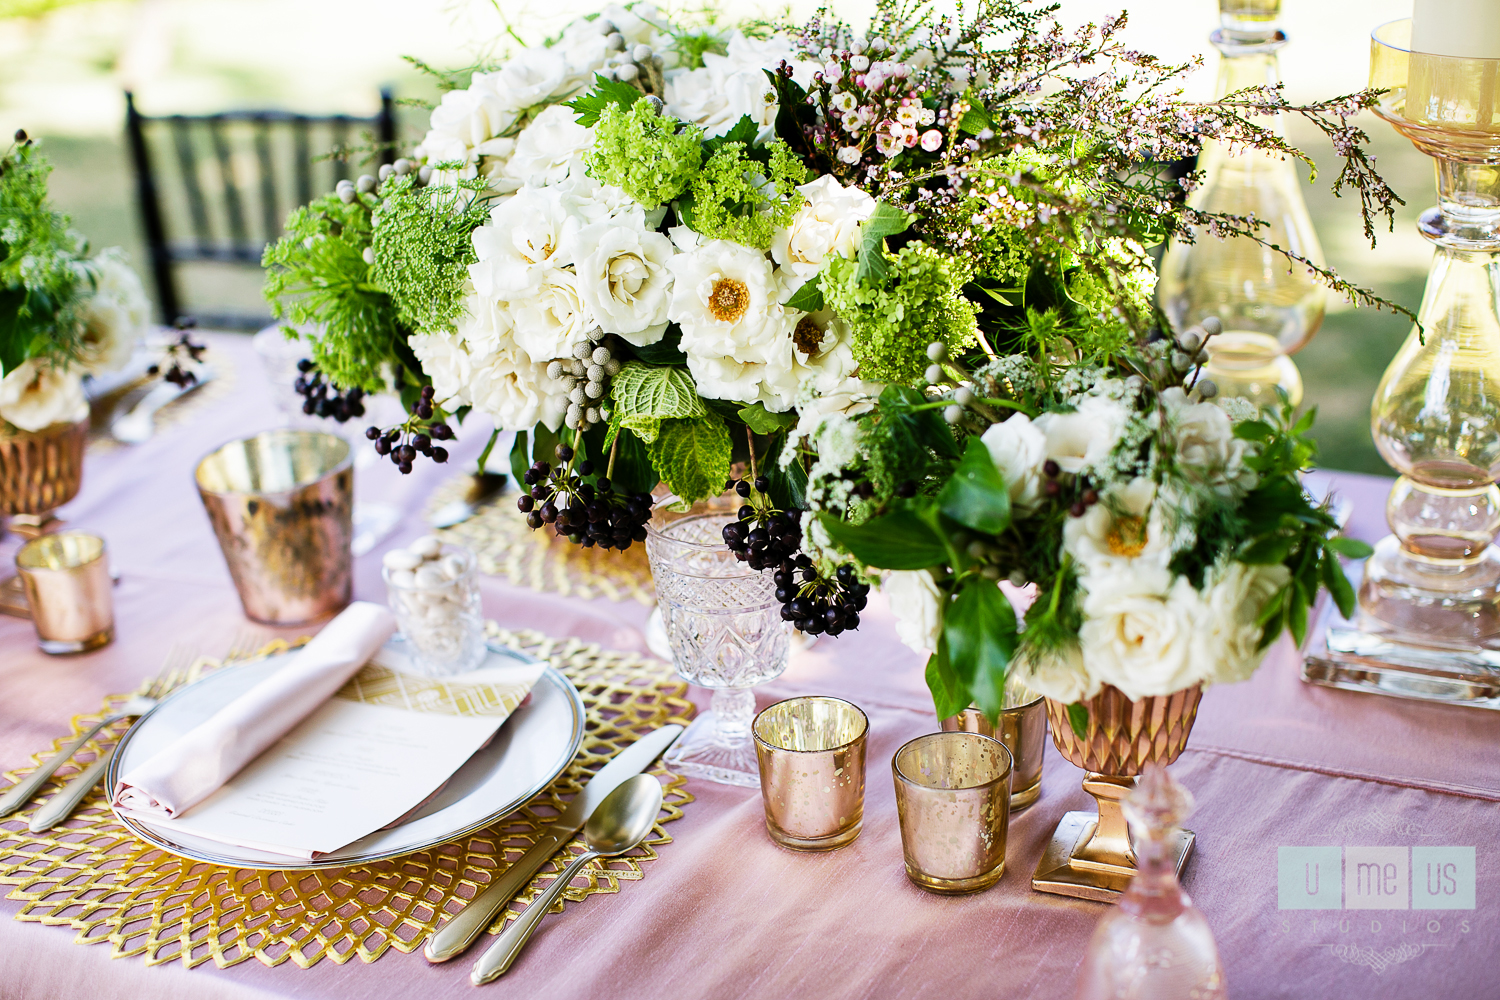 gatsby-esque centerpiece / floral design by passion roots / U Me Us photography